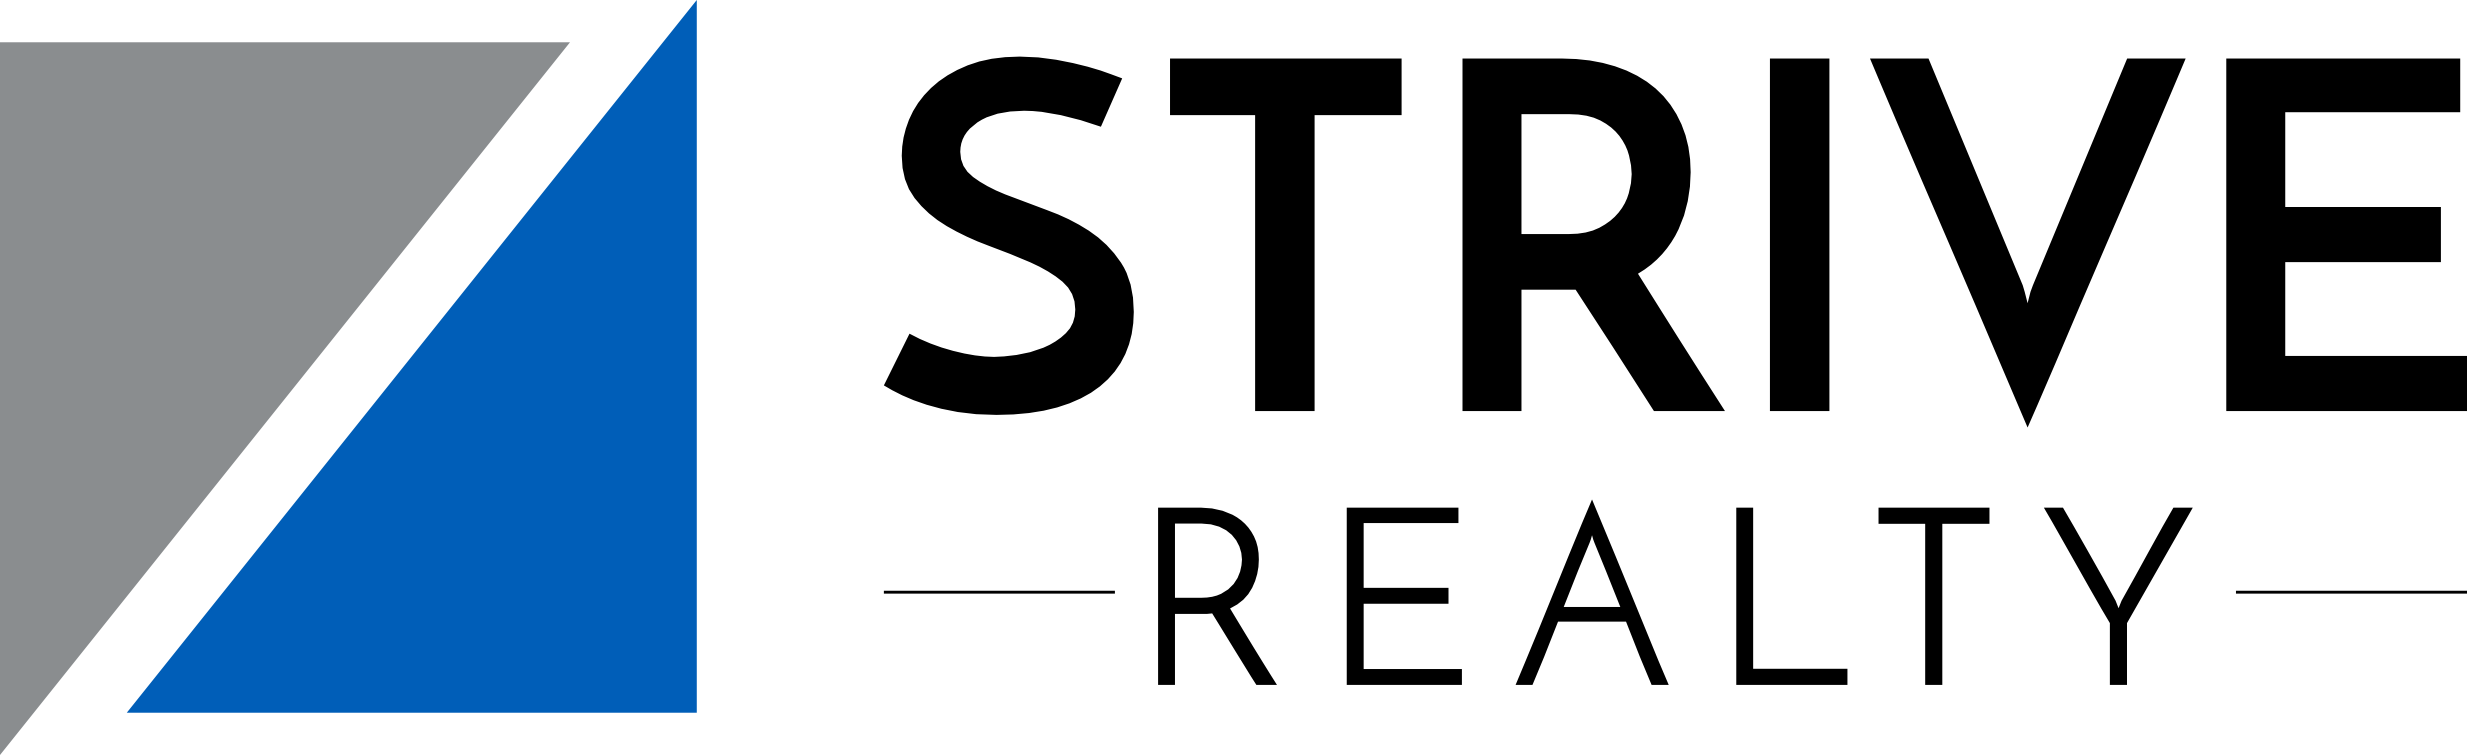 Strive Realty